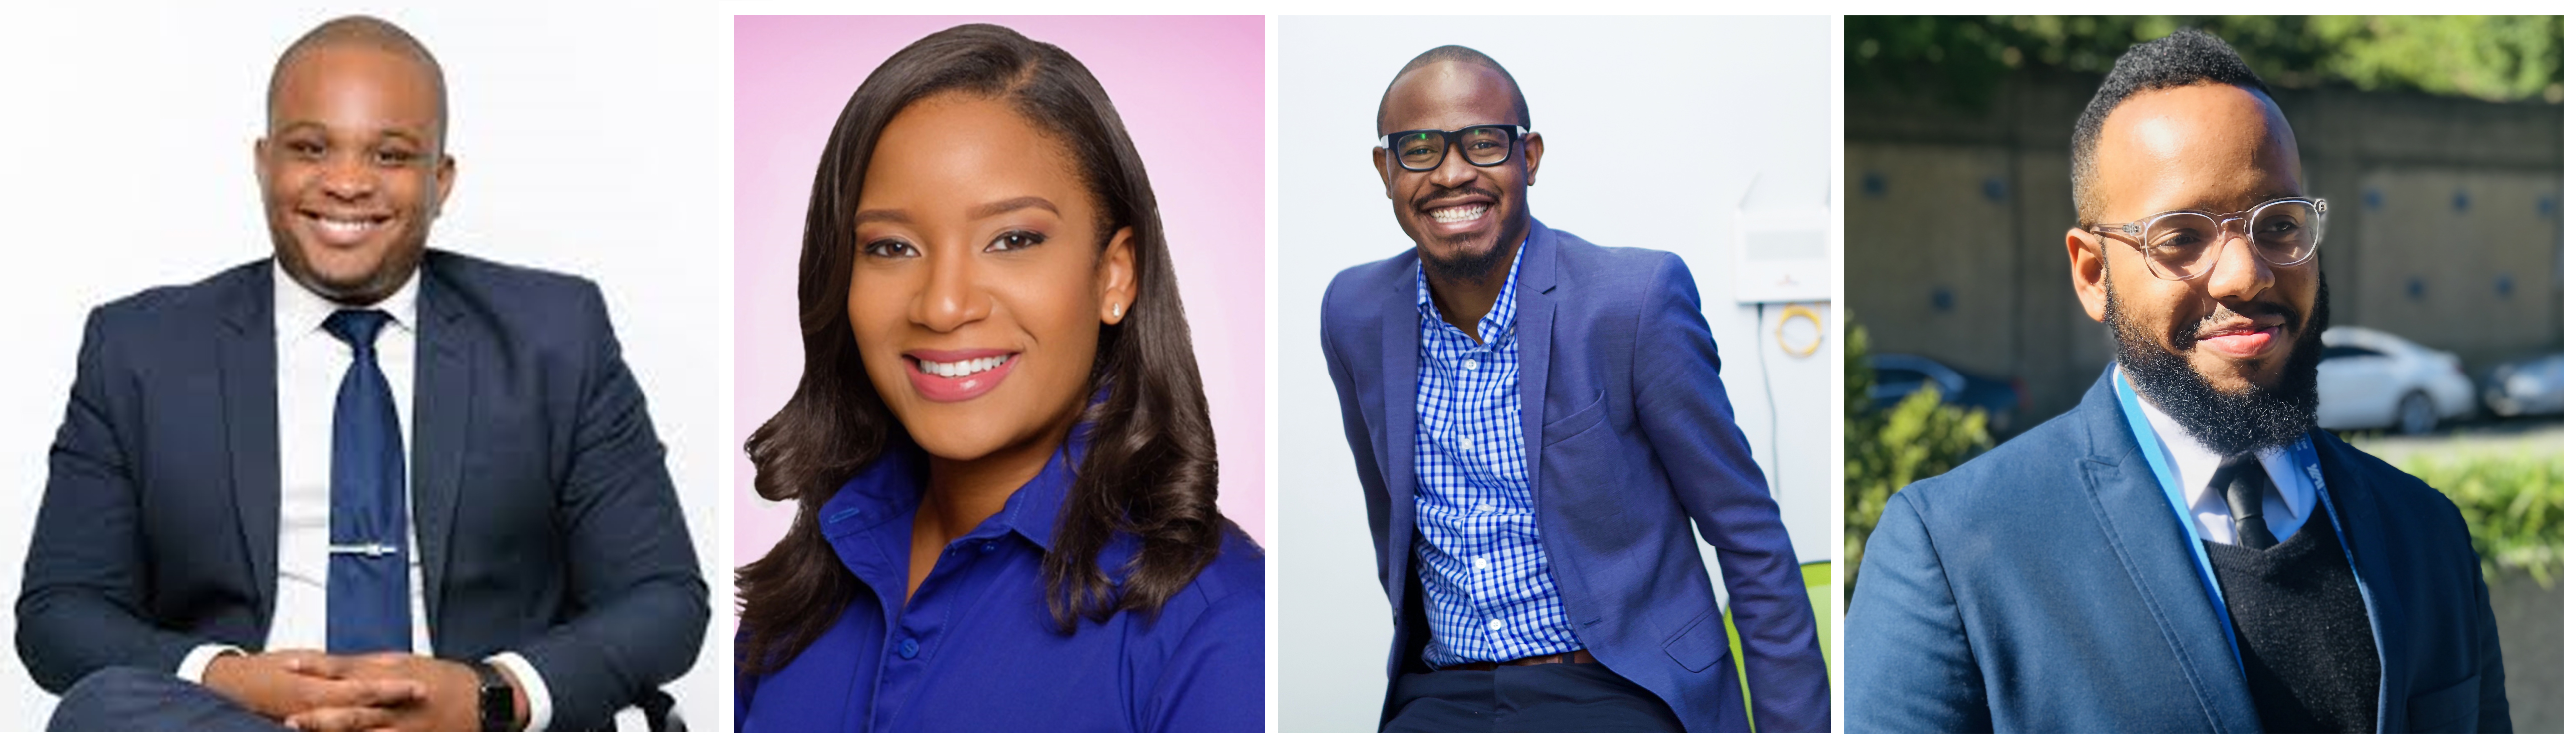 Local Entrepreneurs Share Lessons In Growing And Strengthening Youth Entrepreneurship At MSBM's Conference July 10-12, 2019